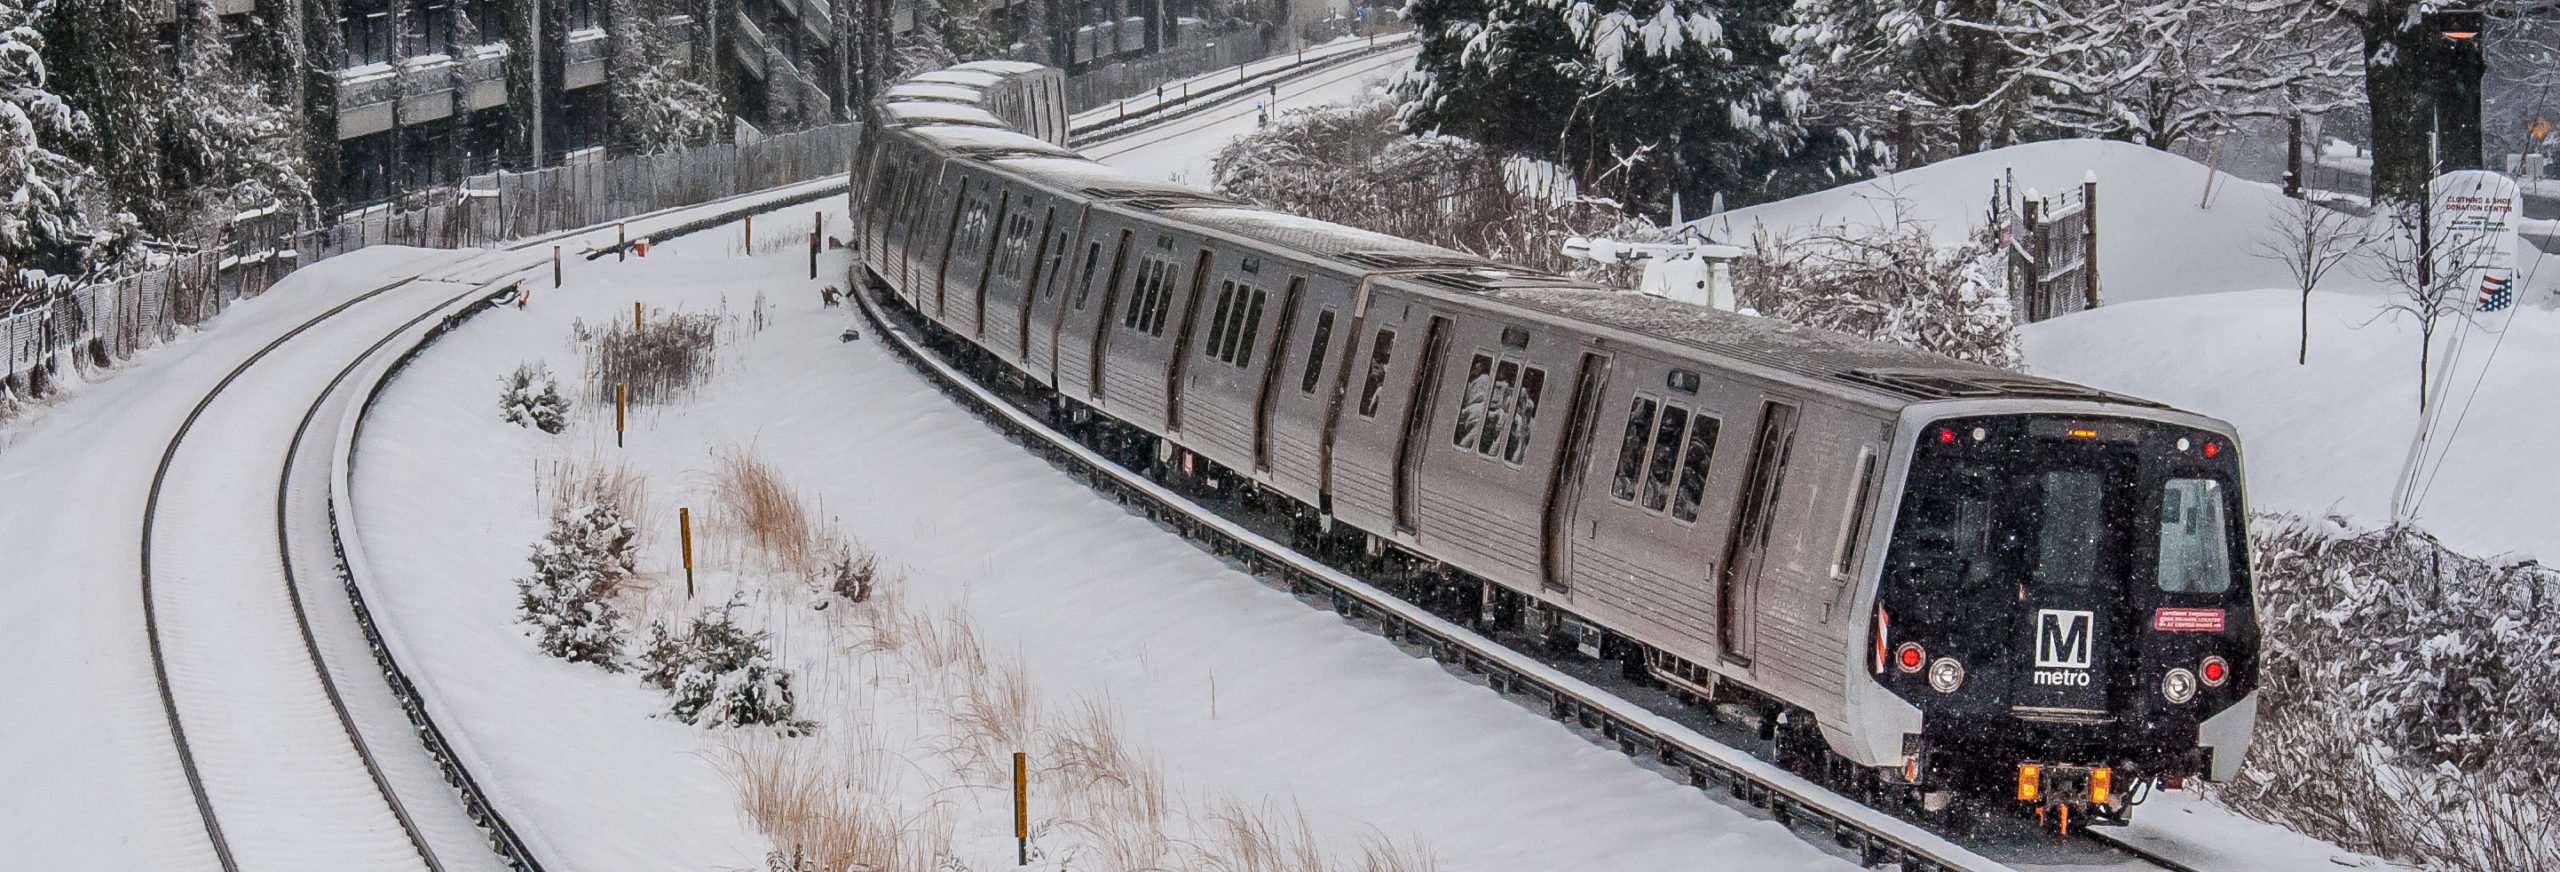 Metro train during the winter